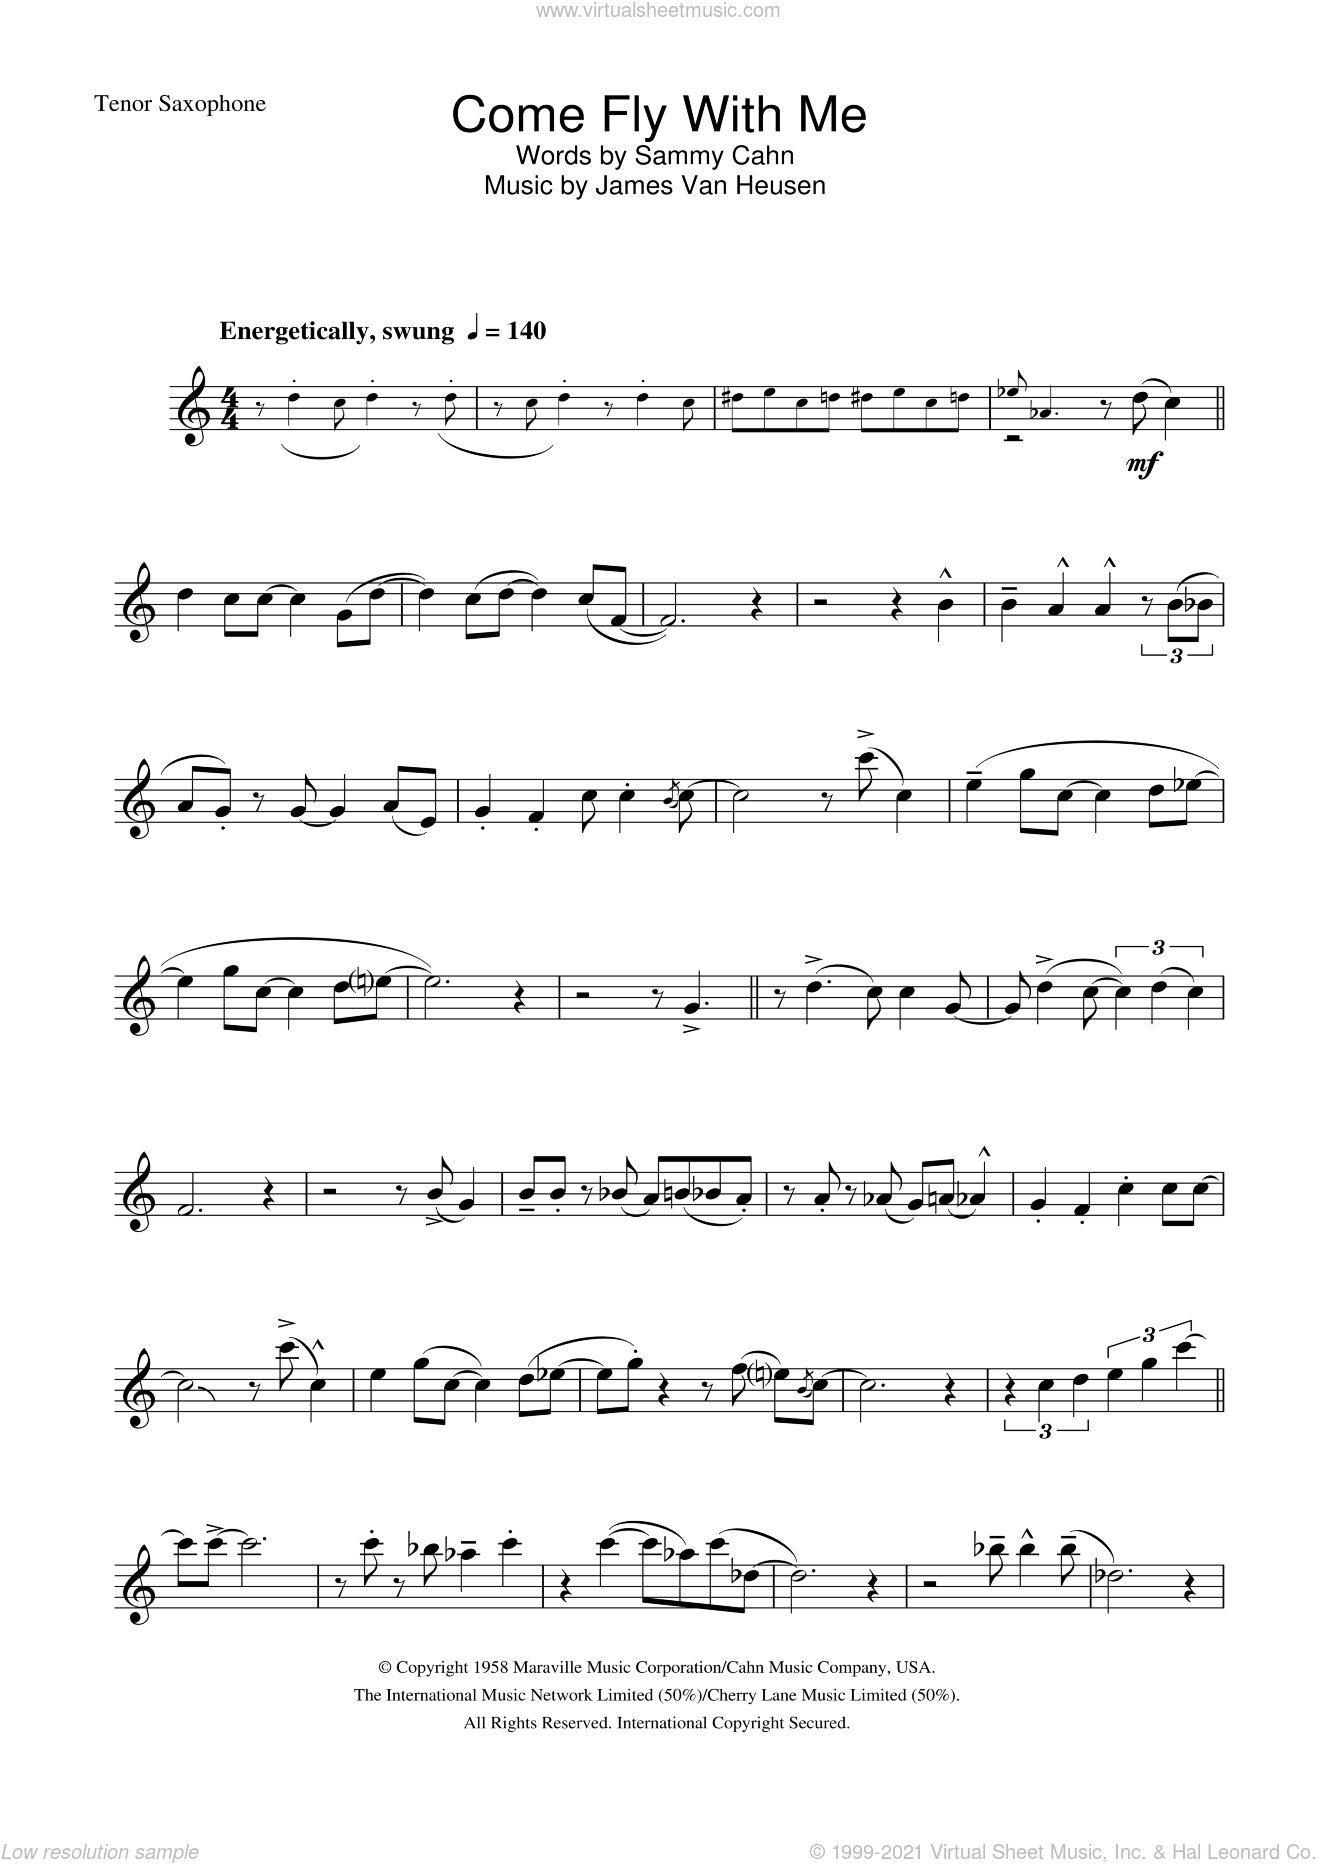 Come Fly With Me sheet music for tenor saxophone solo by Frank Sinatra, Jimmy Van Heusen and Sammy Cahn, intermediate skill level